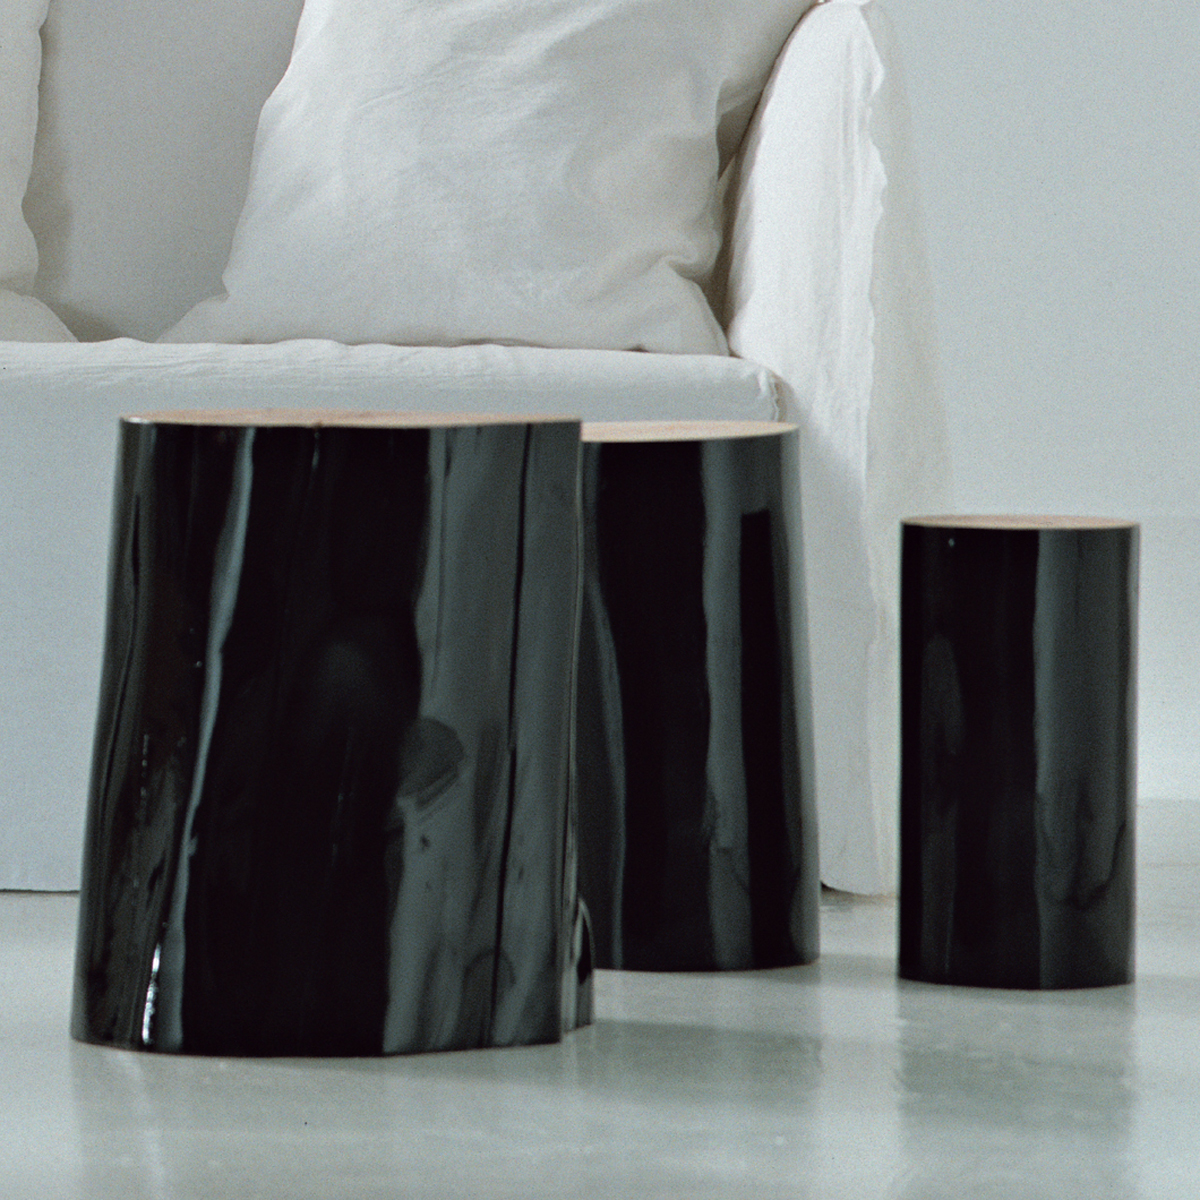 gervasonilogs s/m/l - Trunk section of beech, barked and glossy black or white lacquered outside.